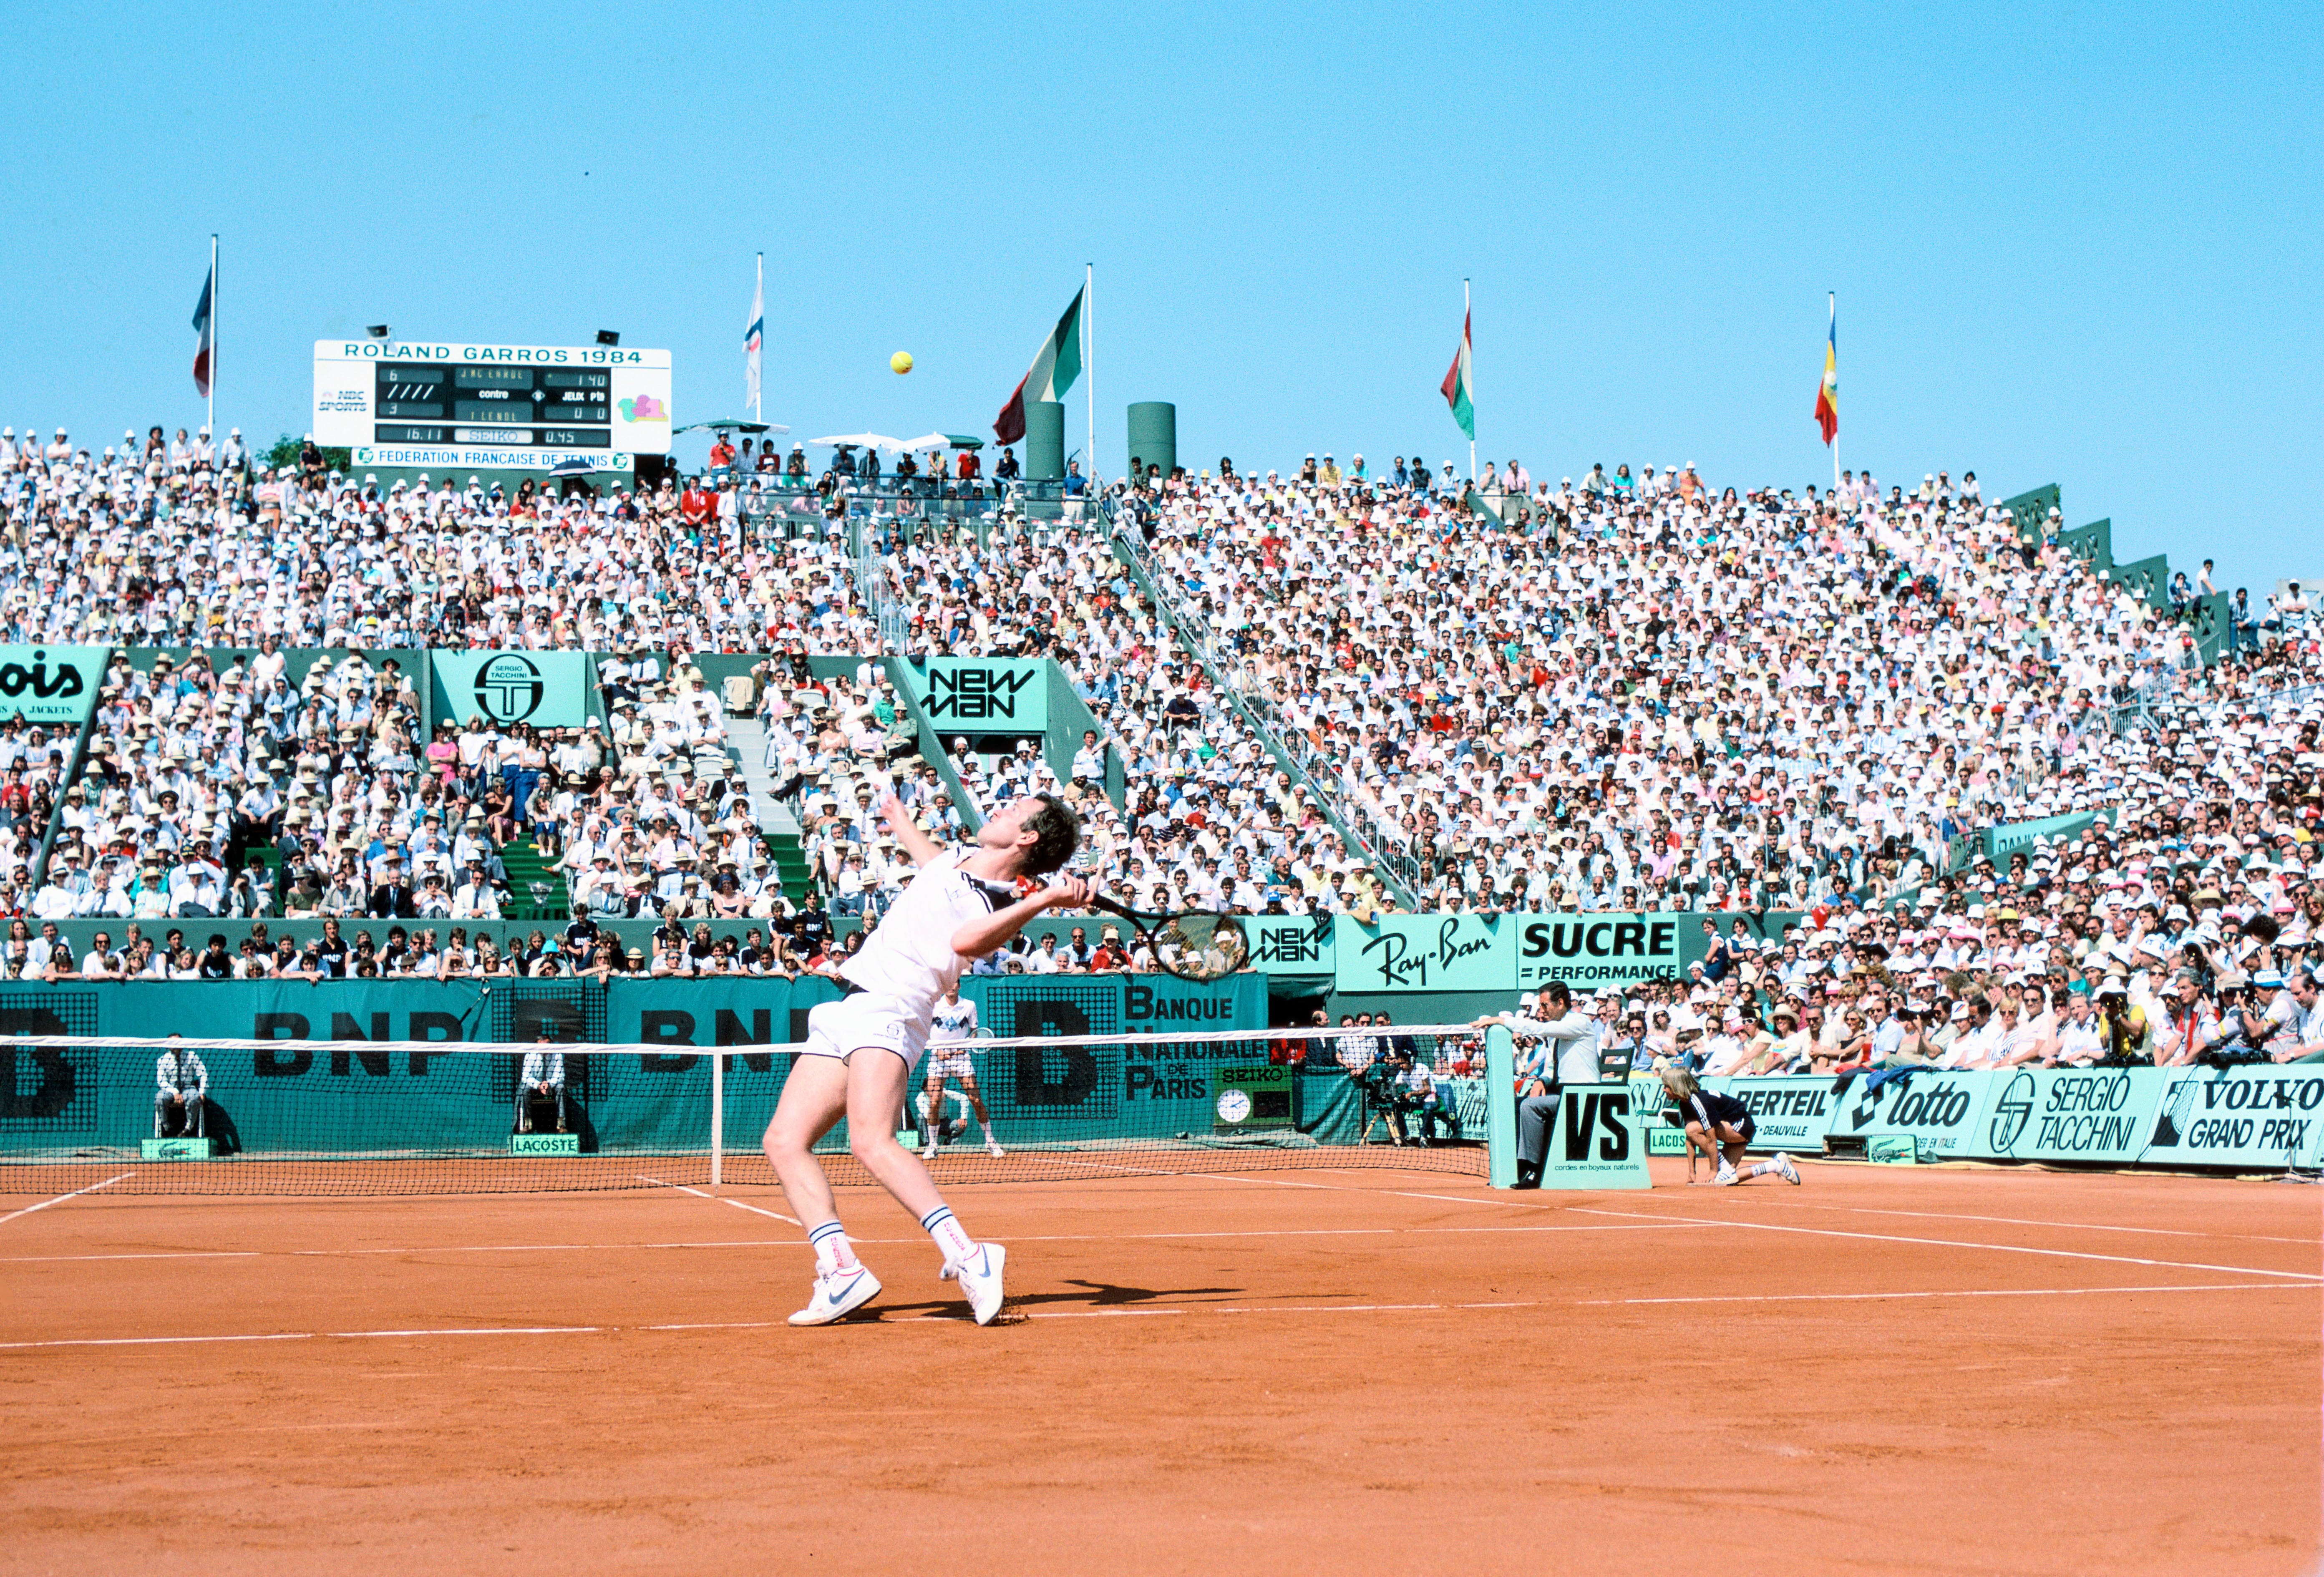 John McEnroe during the final at Roland-Garros 1984